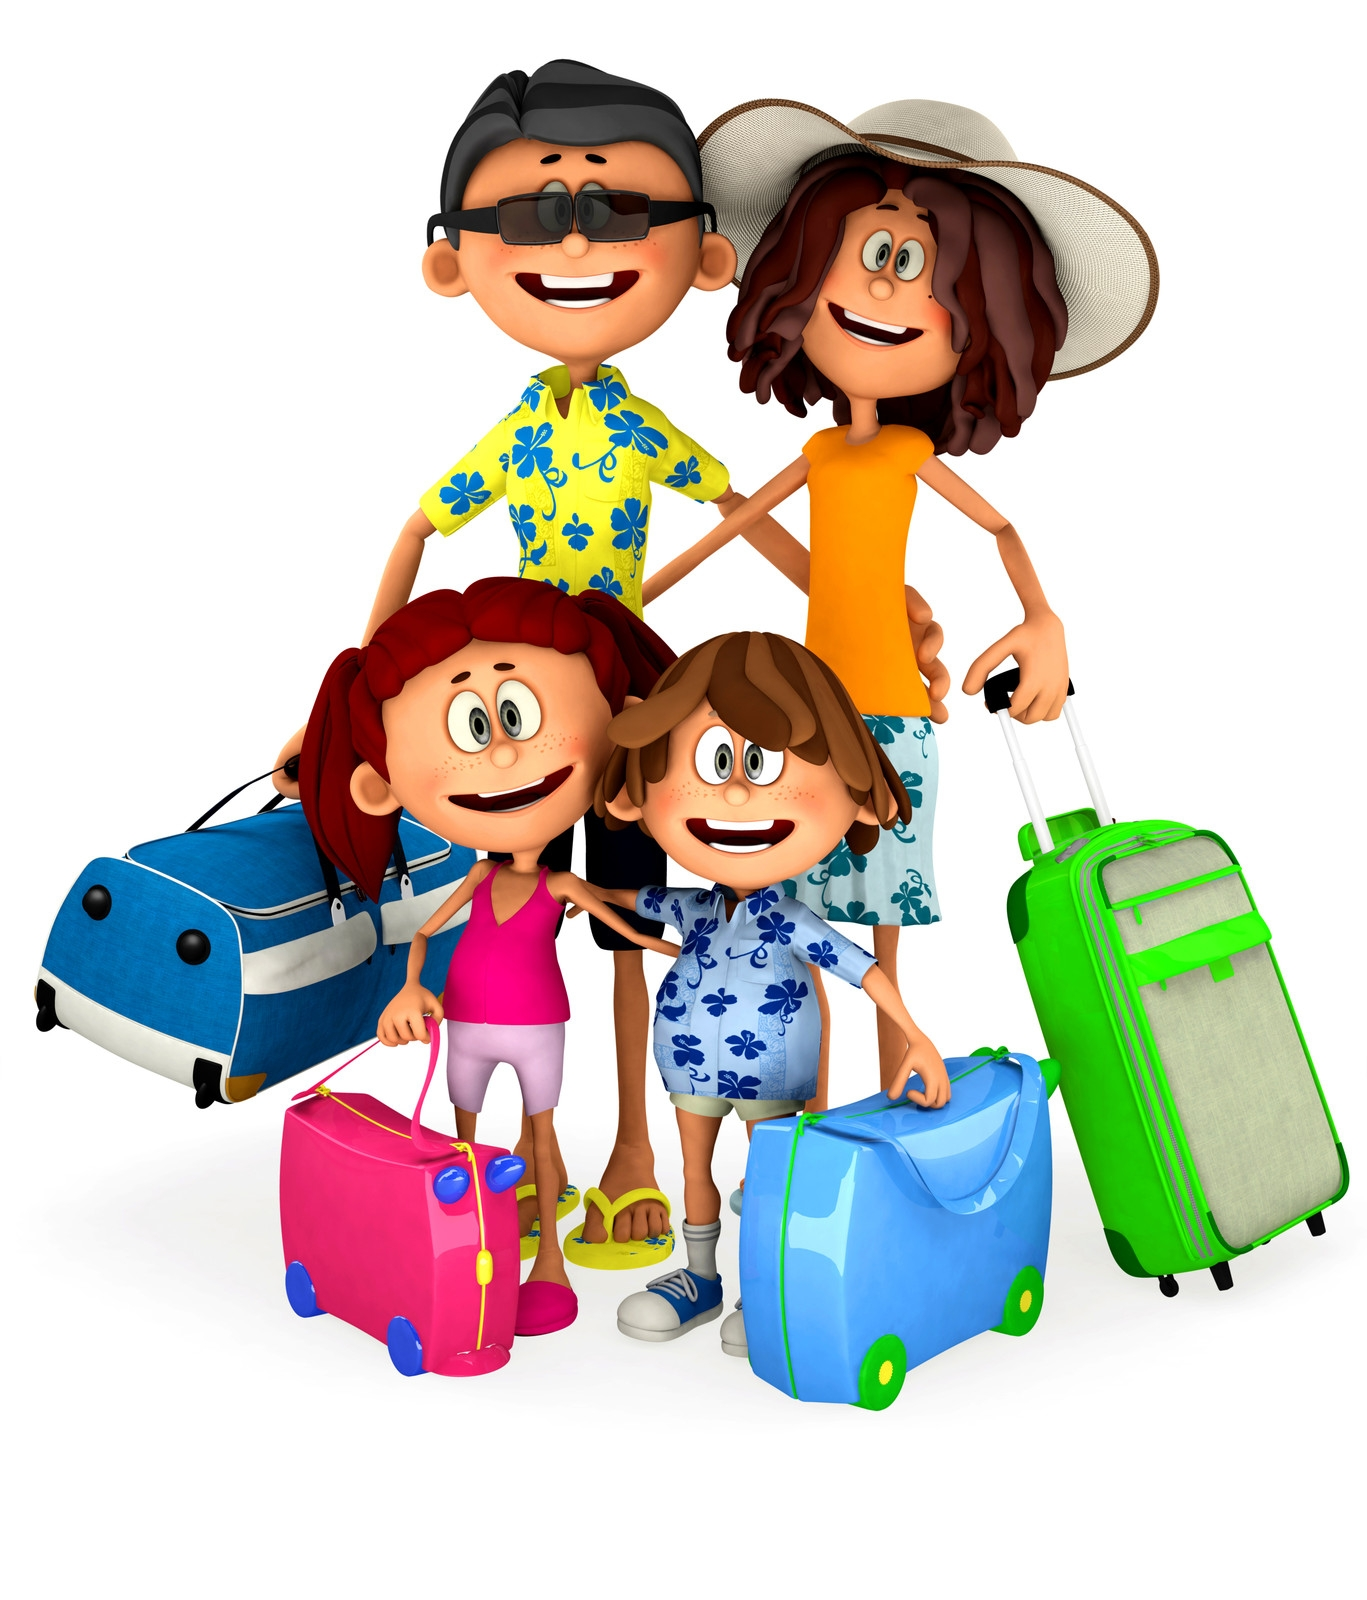 Clipart picture of tourist at airport clipart freeuse download Airport clipart family visit - 86 transparent clip arts, images and ... clipart freeuse download